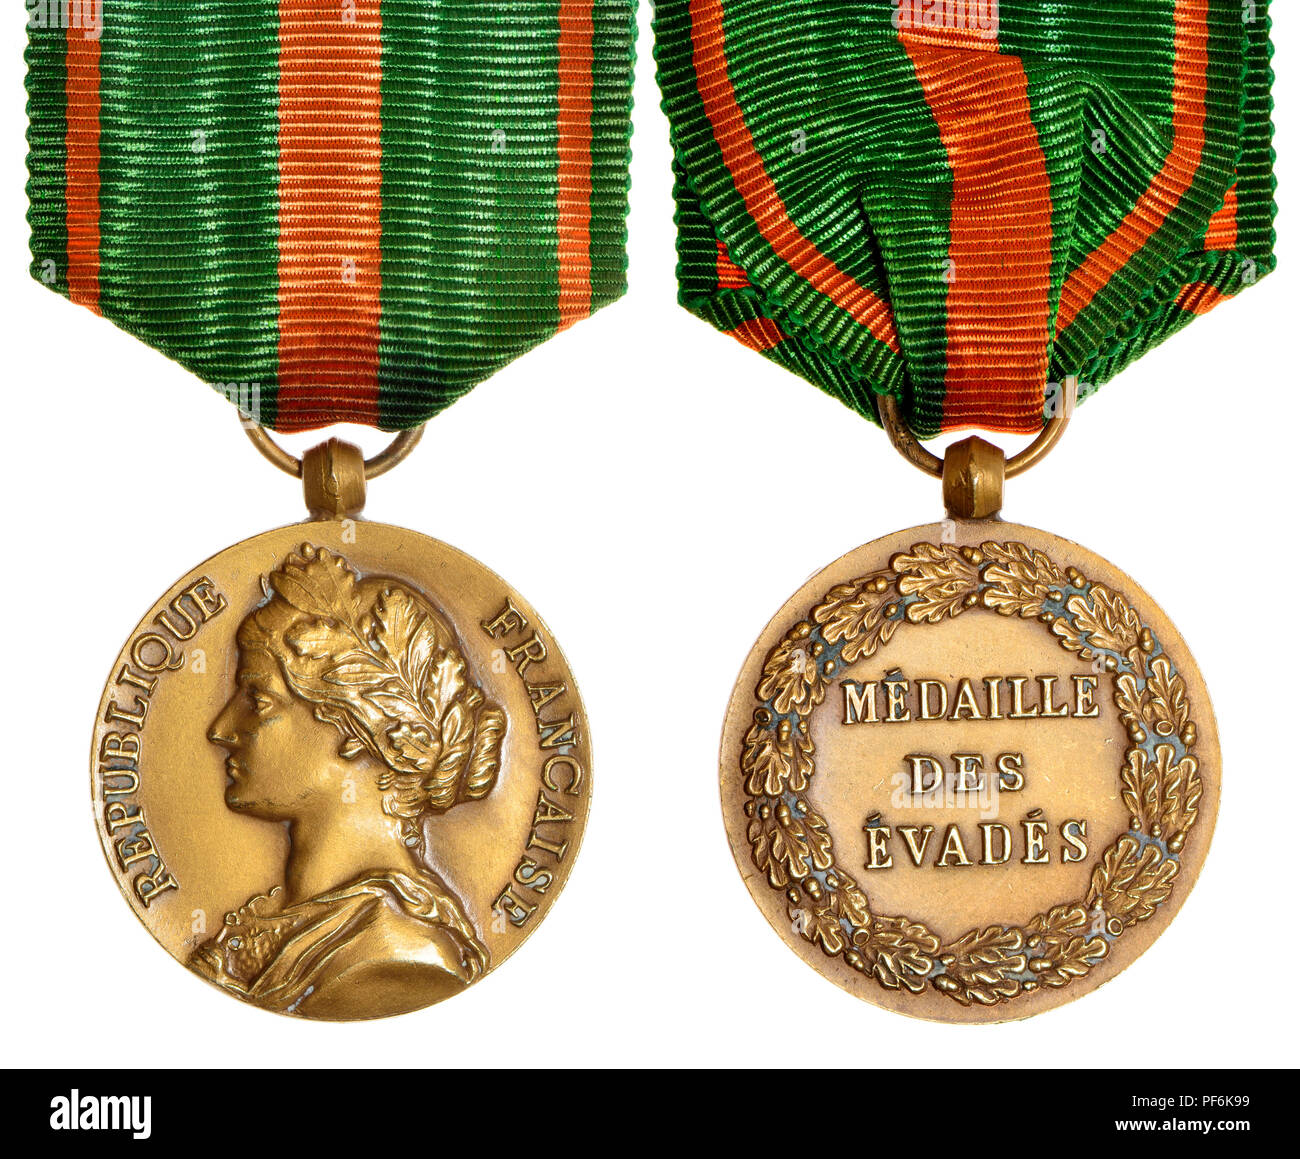 French Escapees' Medal (Médaille des Évadés) awarded by the government of France to prisoners of war who successfully escaped internment or died as a  - Stock Image